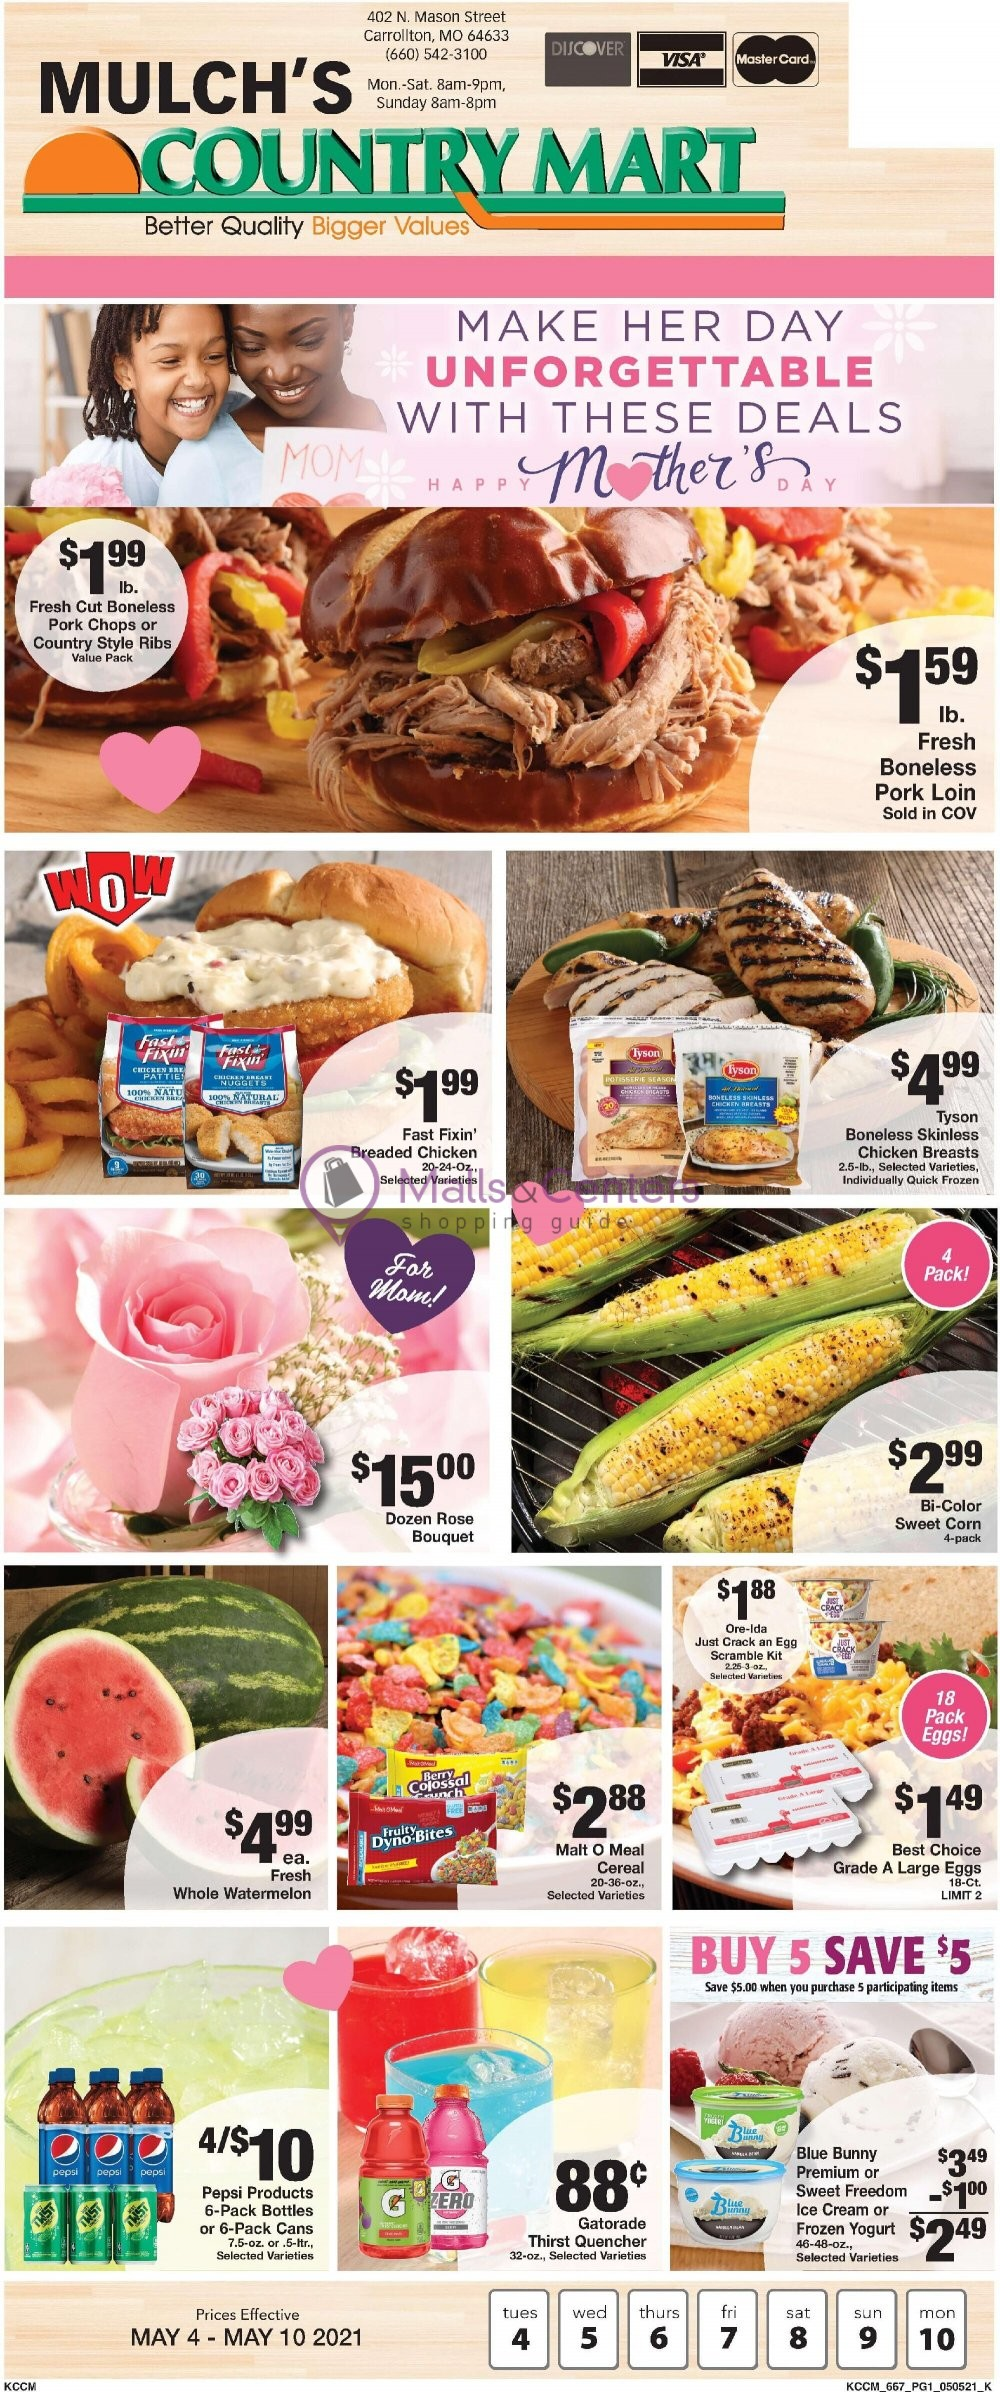 weekly ads Country Mart - page 1 - mallscenters.com